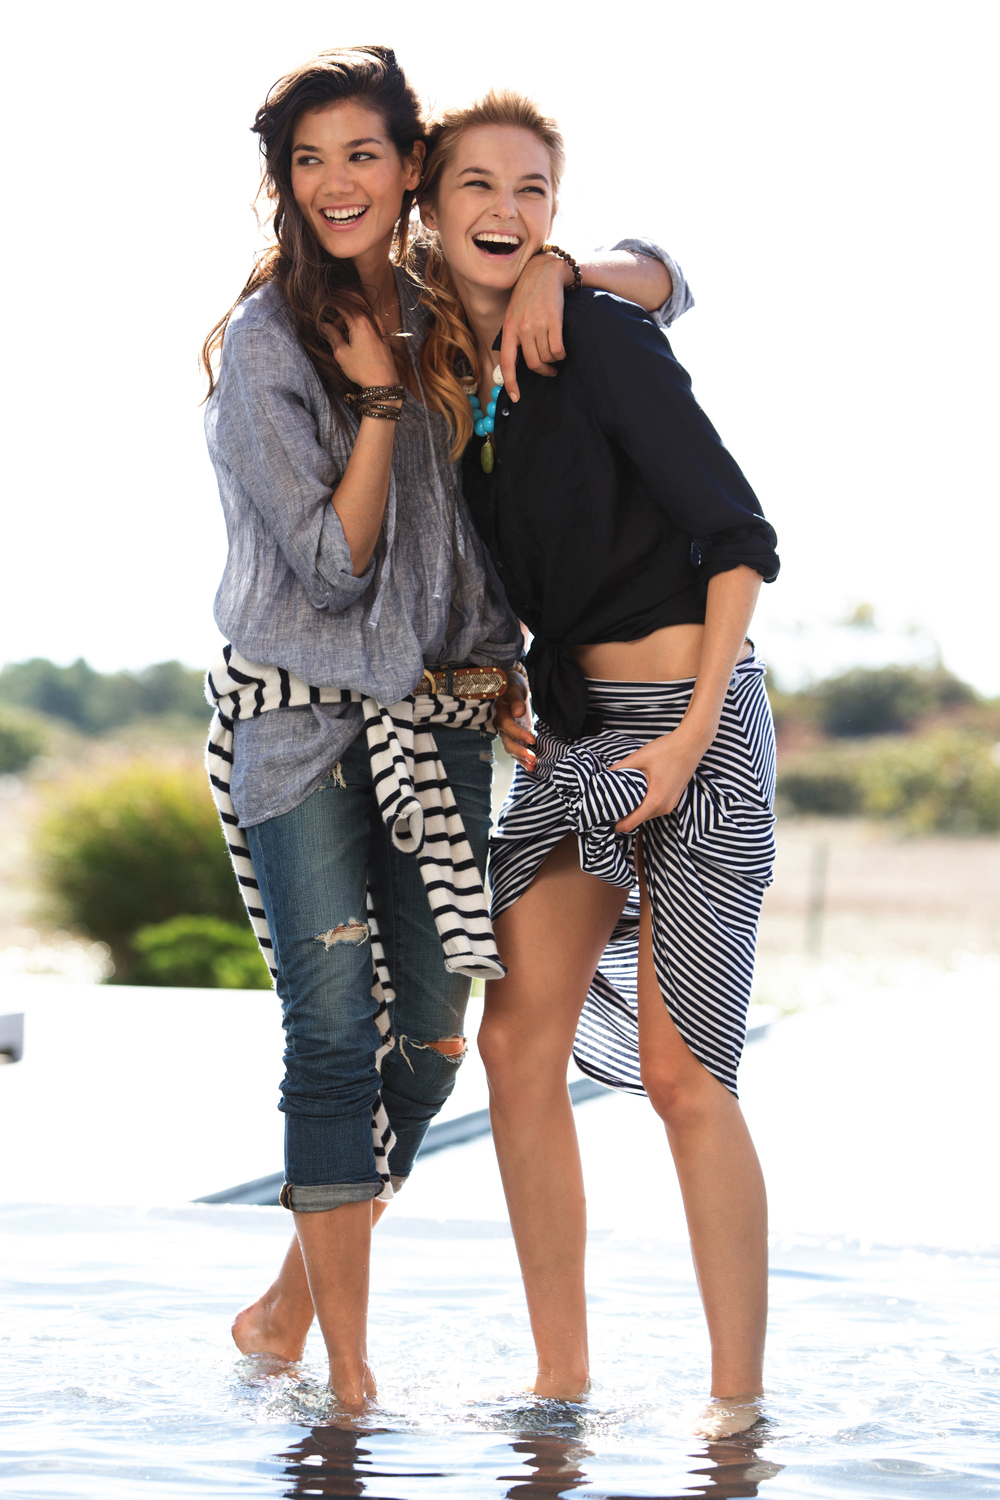 noot photo shoot for calypso st barth in the hamptons 16